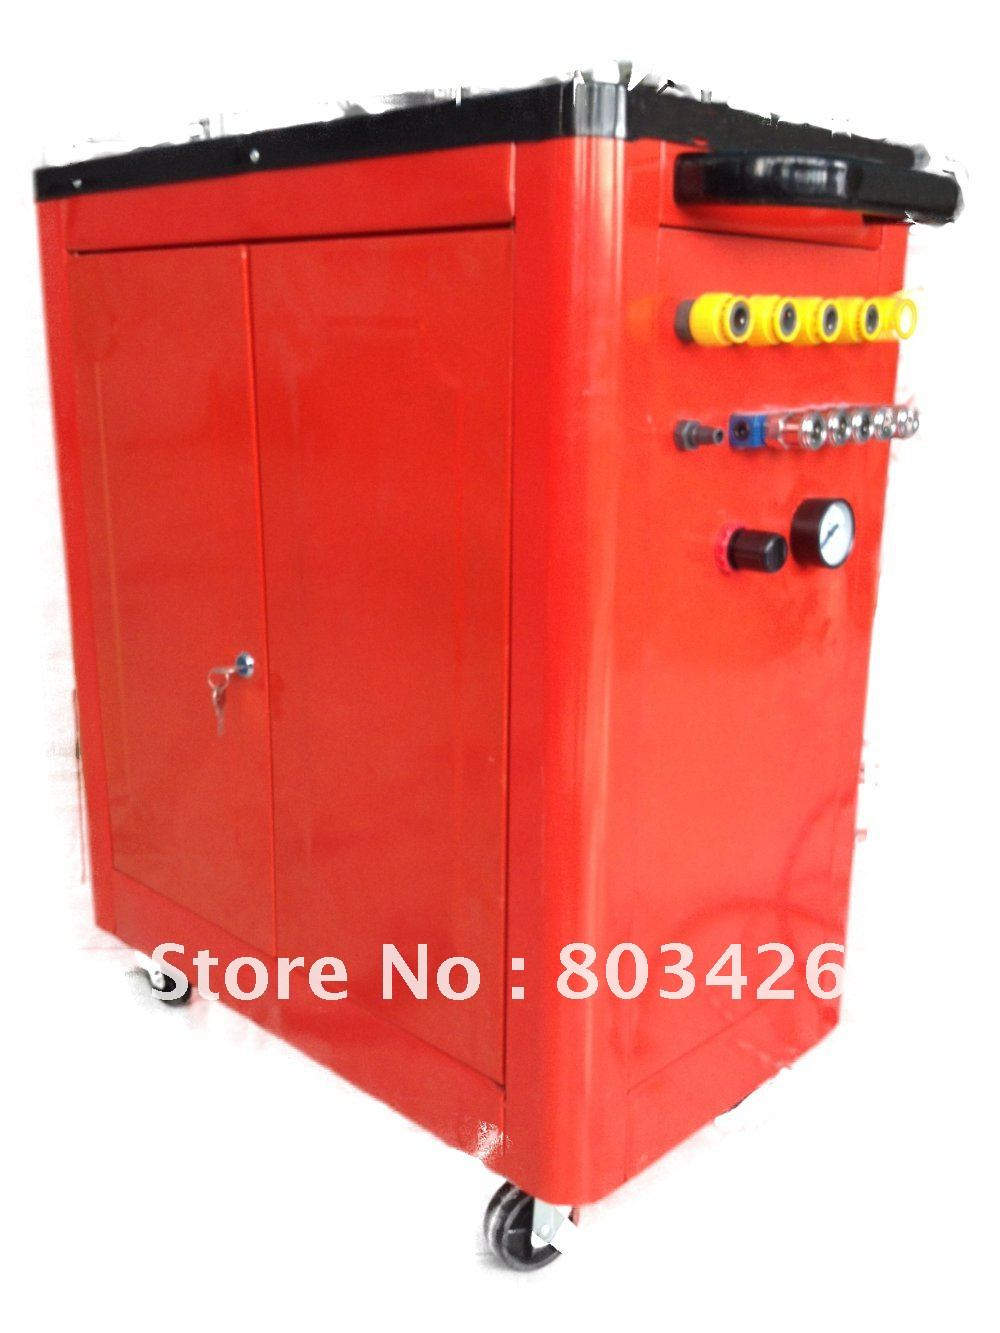 JETYOUNG Portable Spray Plating Kit machine for spraying chrome paint chemicals curved surface treatment matel plastic wood glas